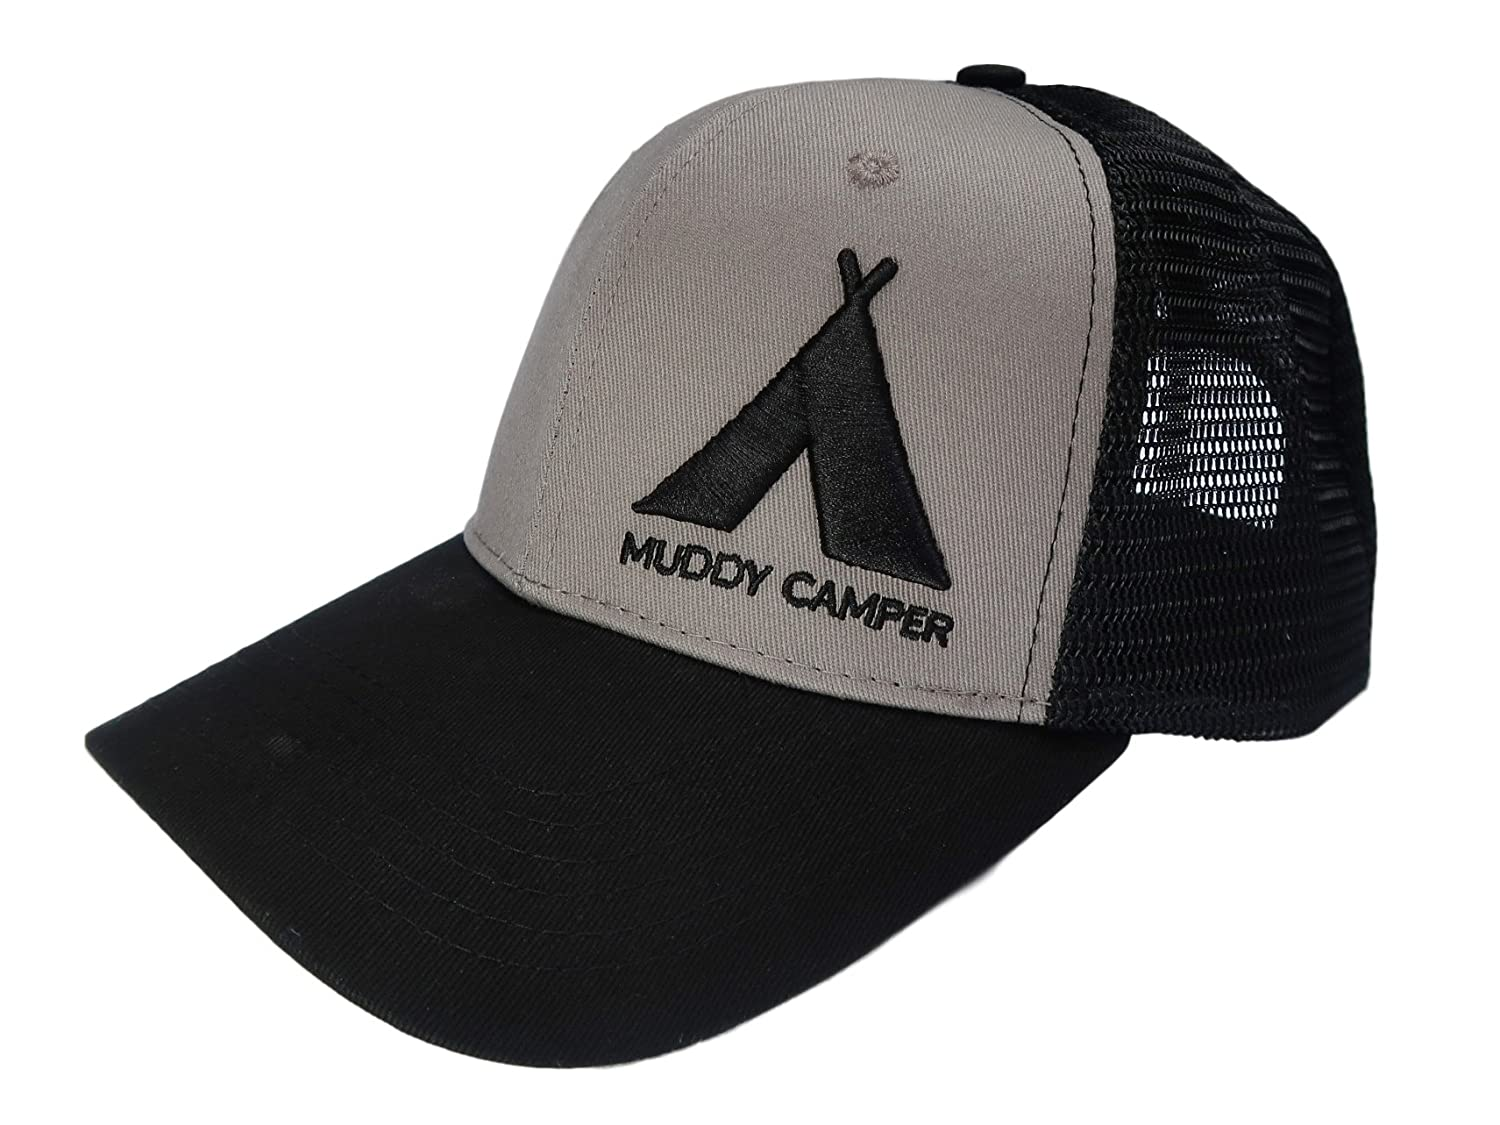 Amazon.com  Muddy Camper Trucker Hat (Adult)  Made For Camping ... 17021bd1ba3